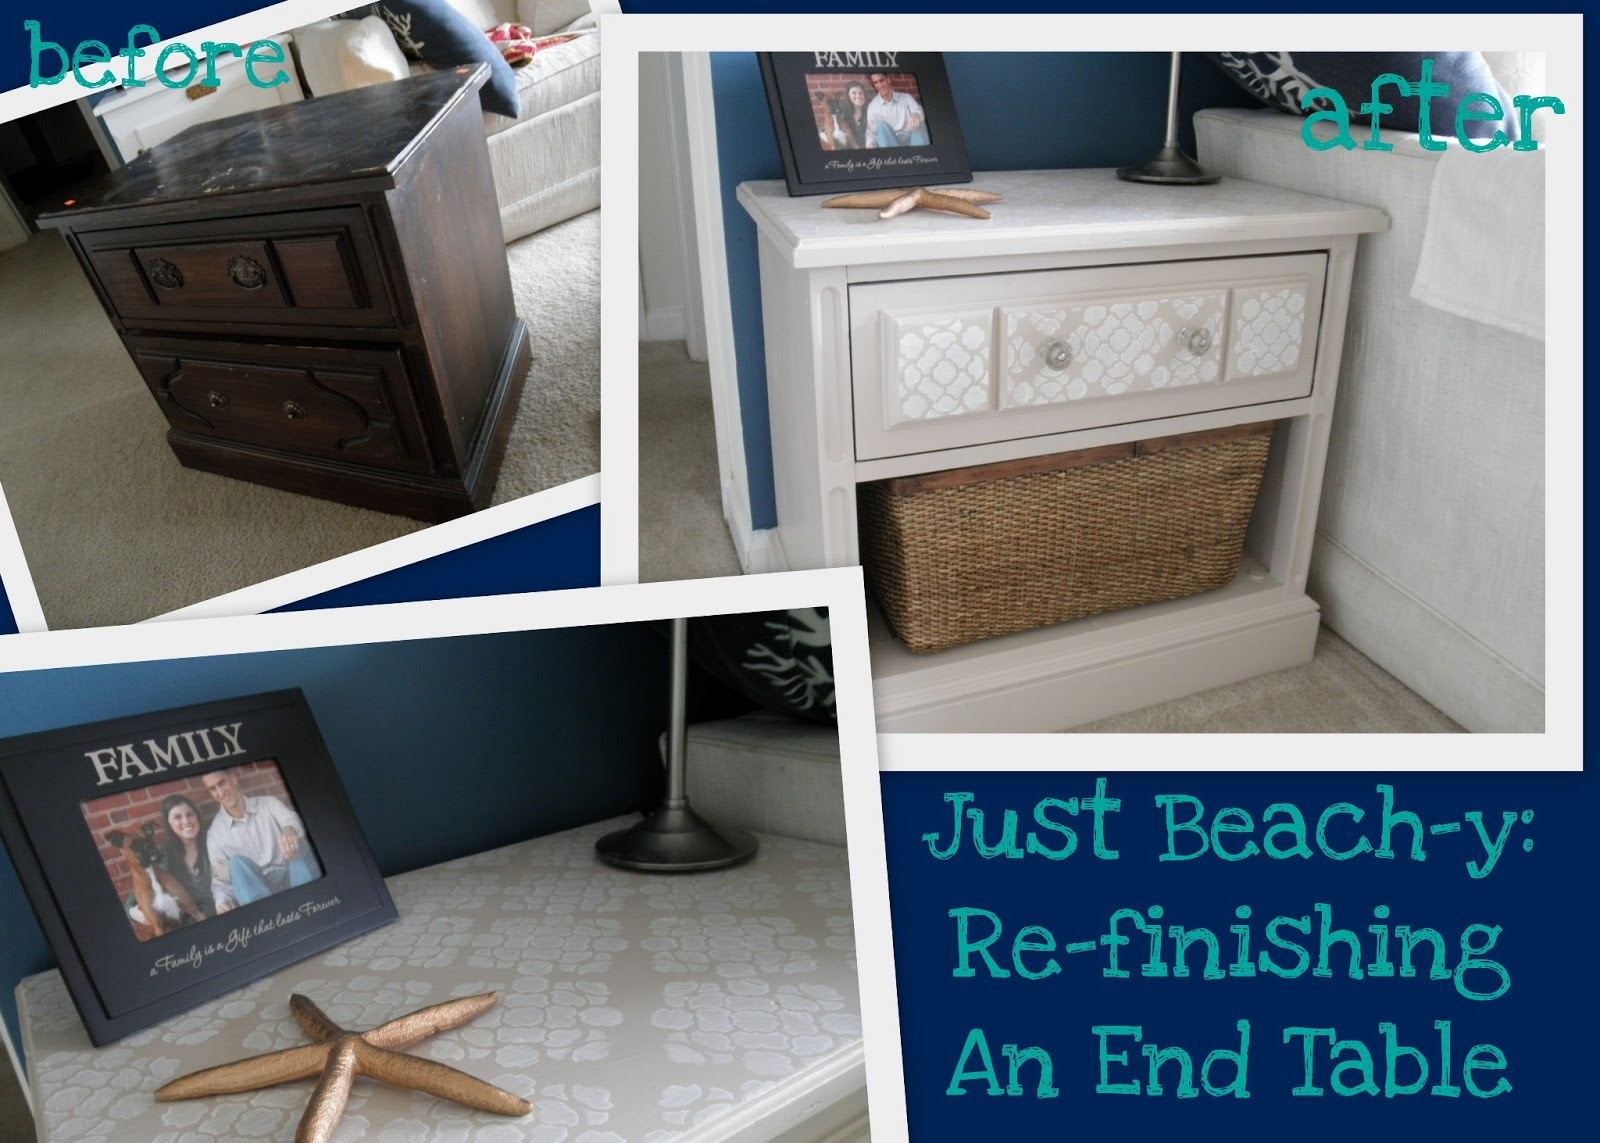 Attirant This Whole End Table Project Actually Happened Kind Of On Accident  Wednesday As I Headed To The Grocery Store. A Thrift Store I Typically  Drive Past Had A ...